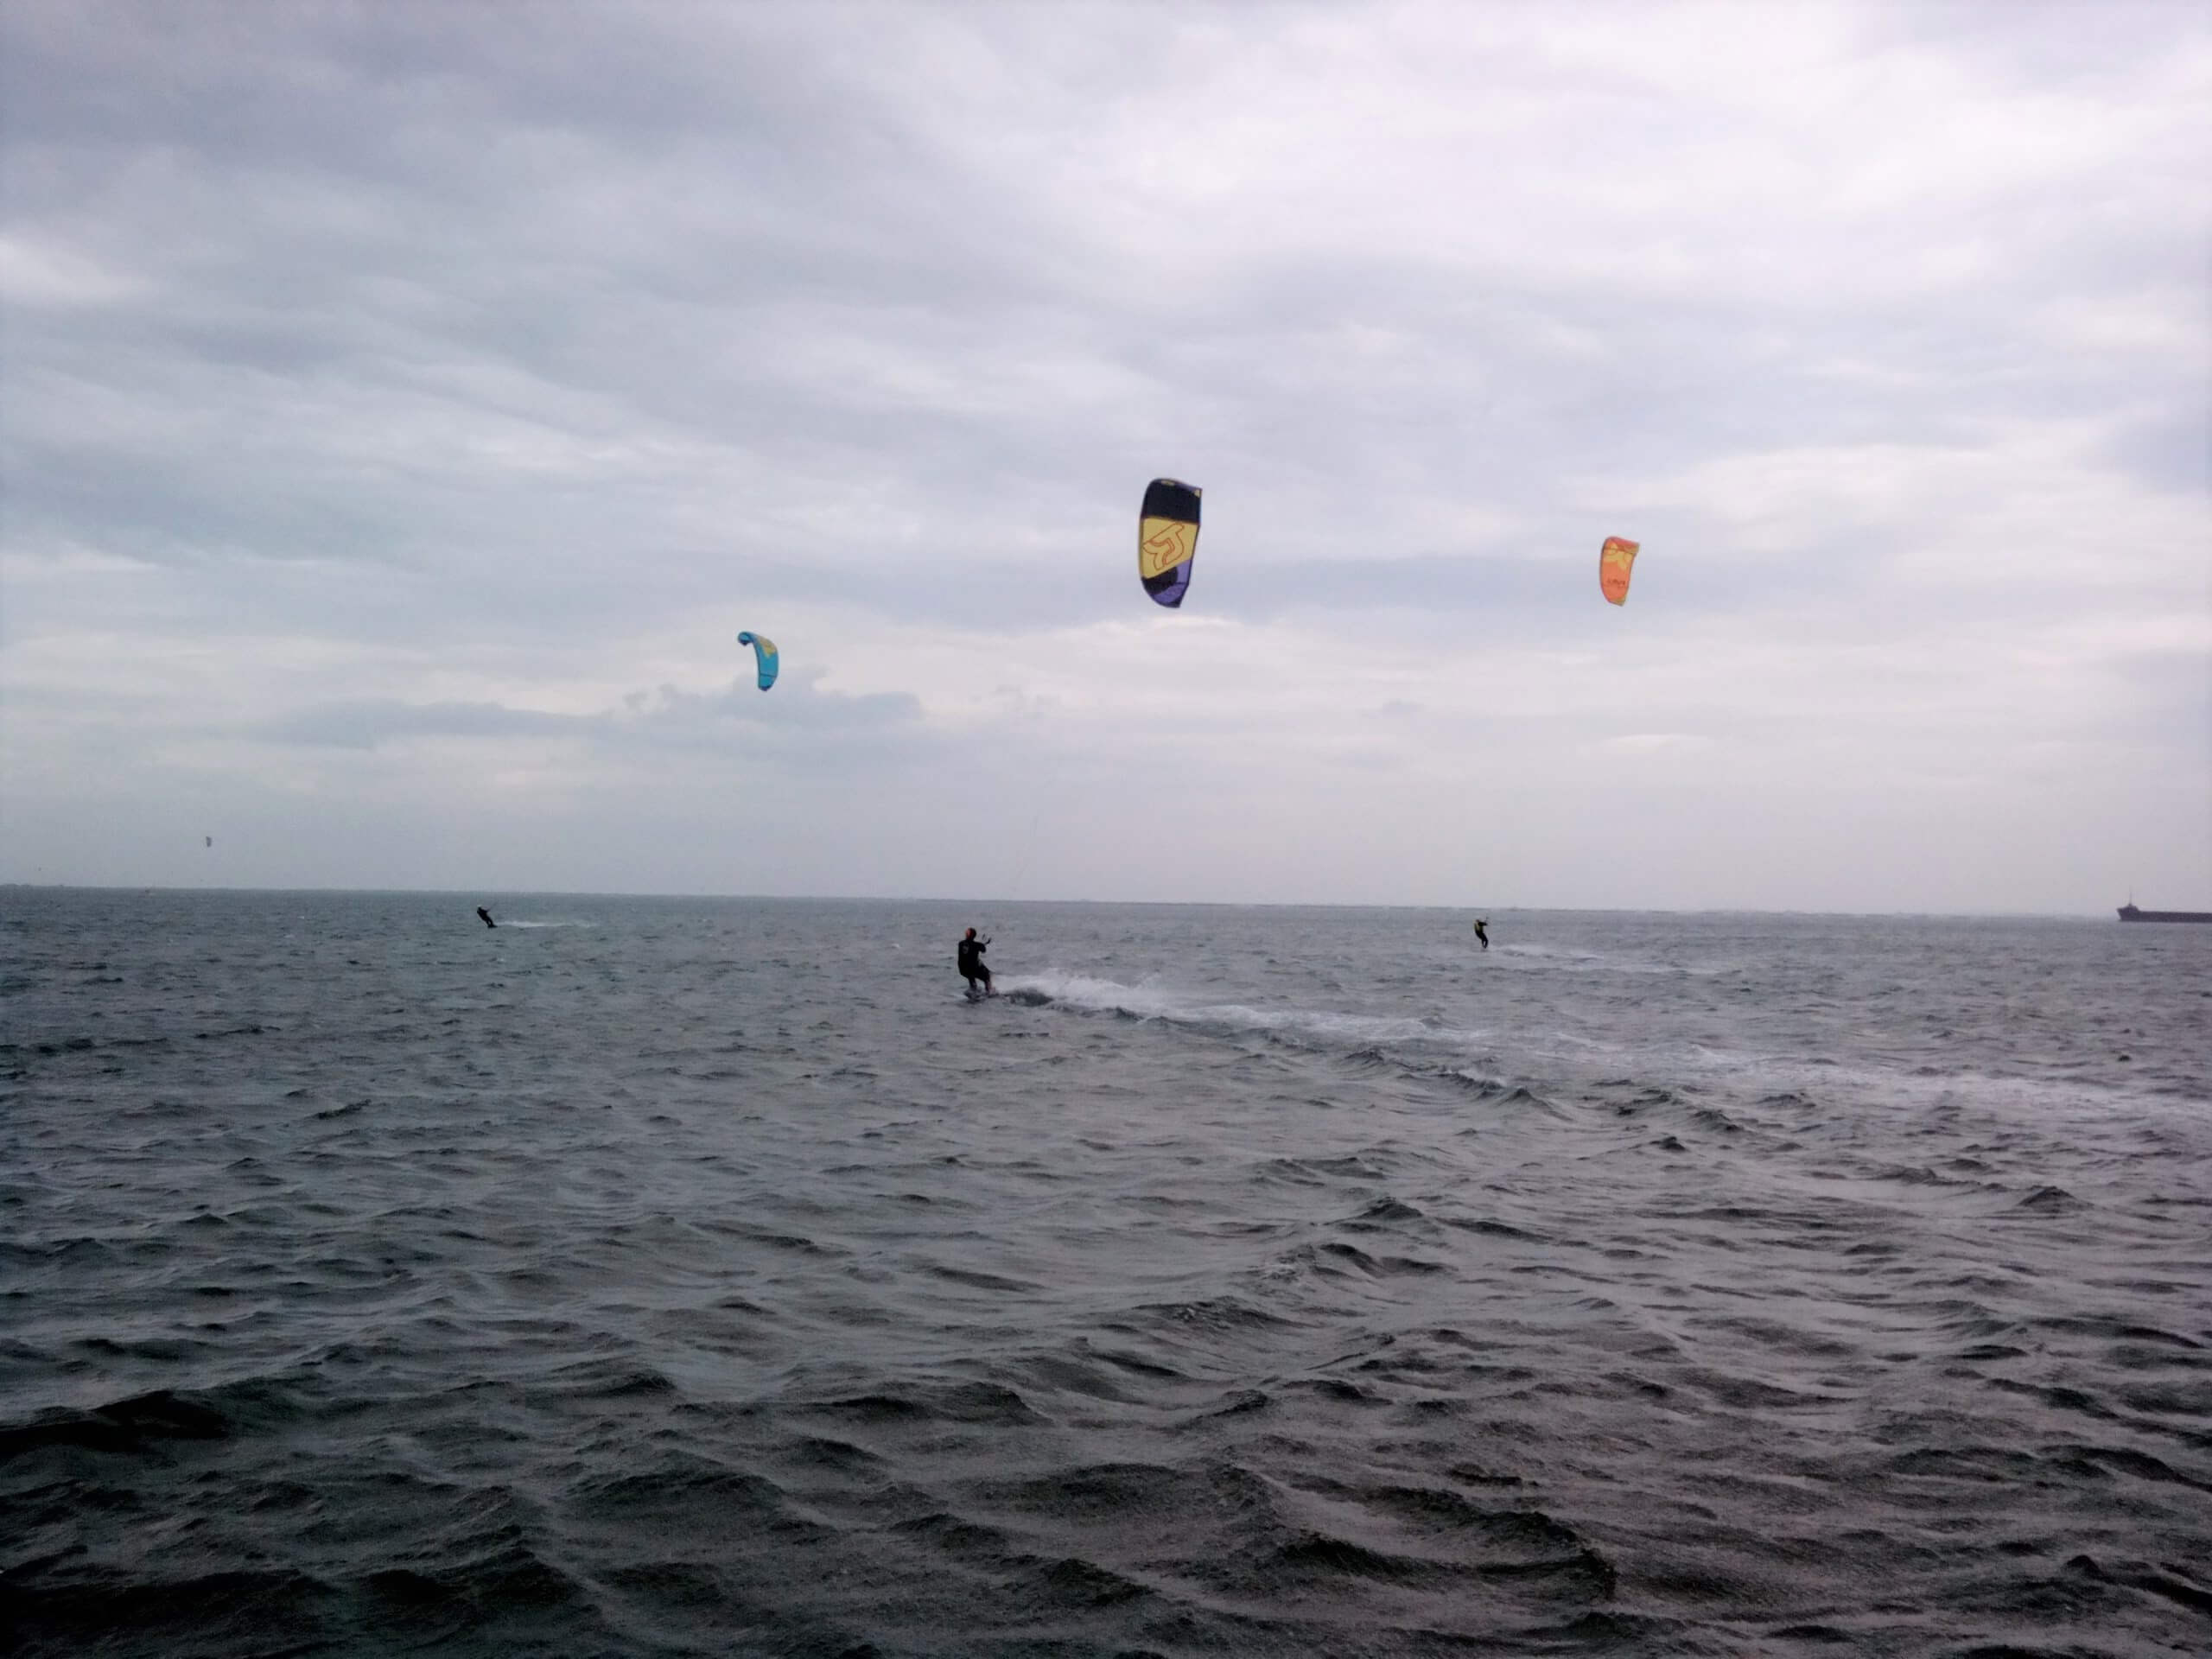 spot-de-kitesurf-they-de-la-gracieuse-univers-kite-flat-sud-de-france-port-saint-louis-du-rhone-1